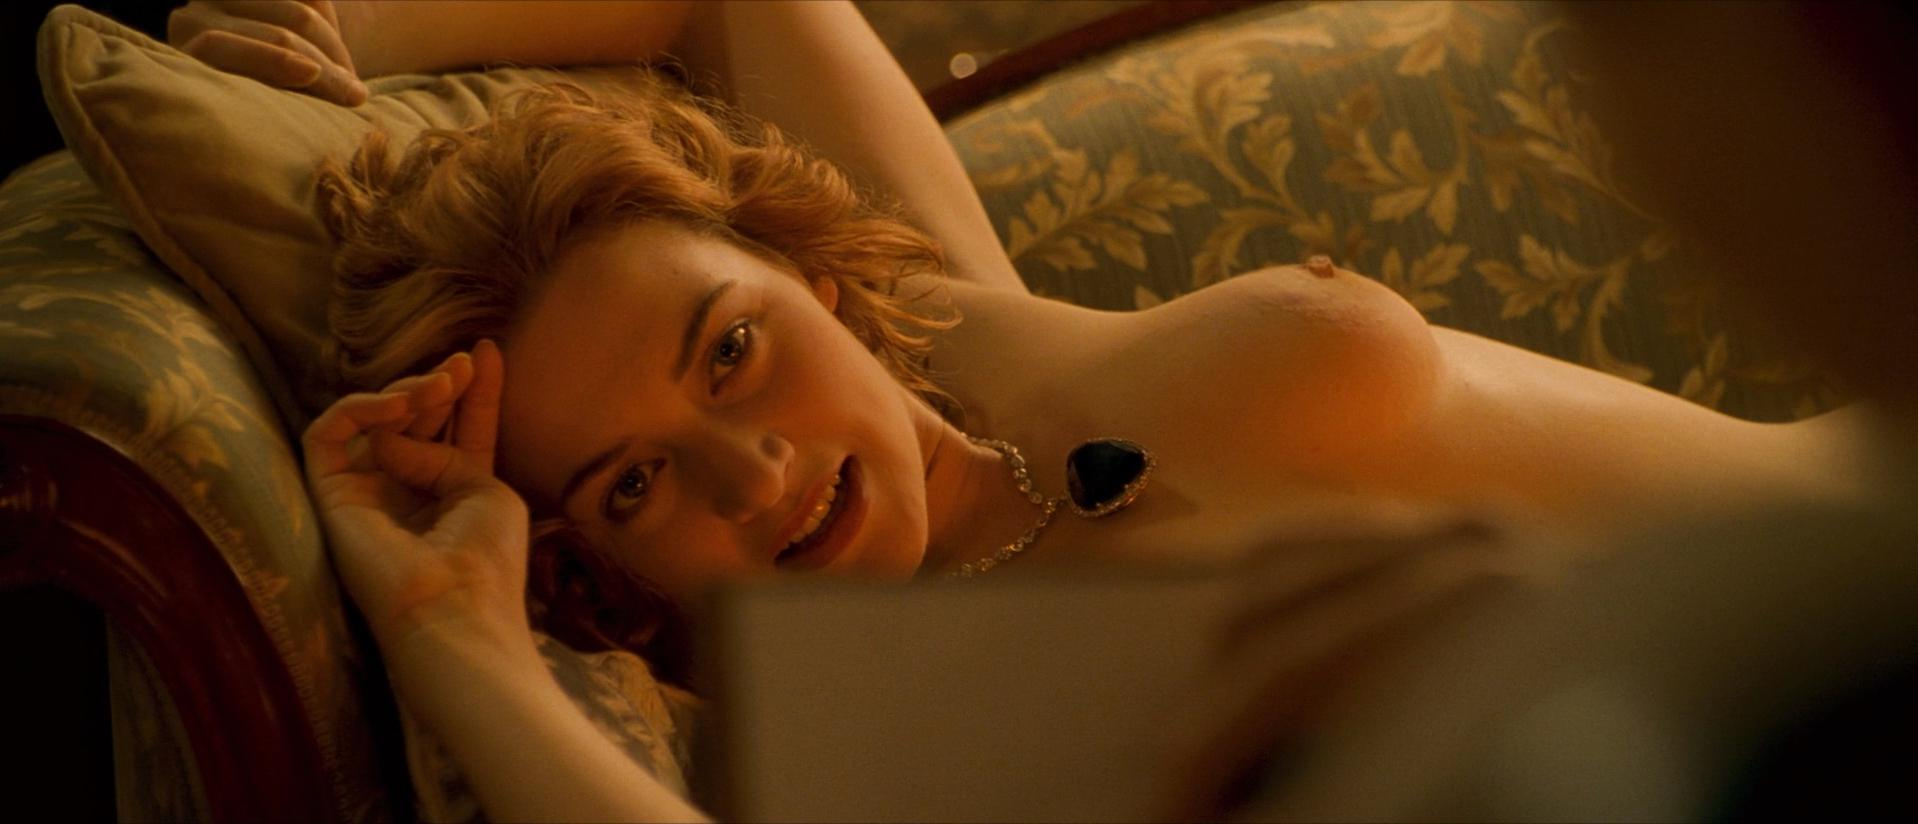 Naked kate winslet From Titanic